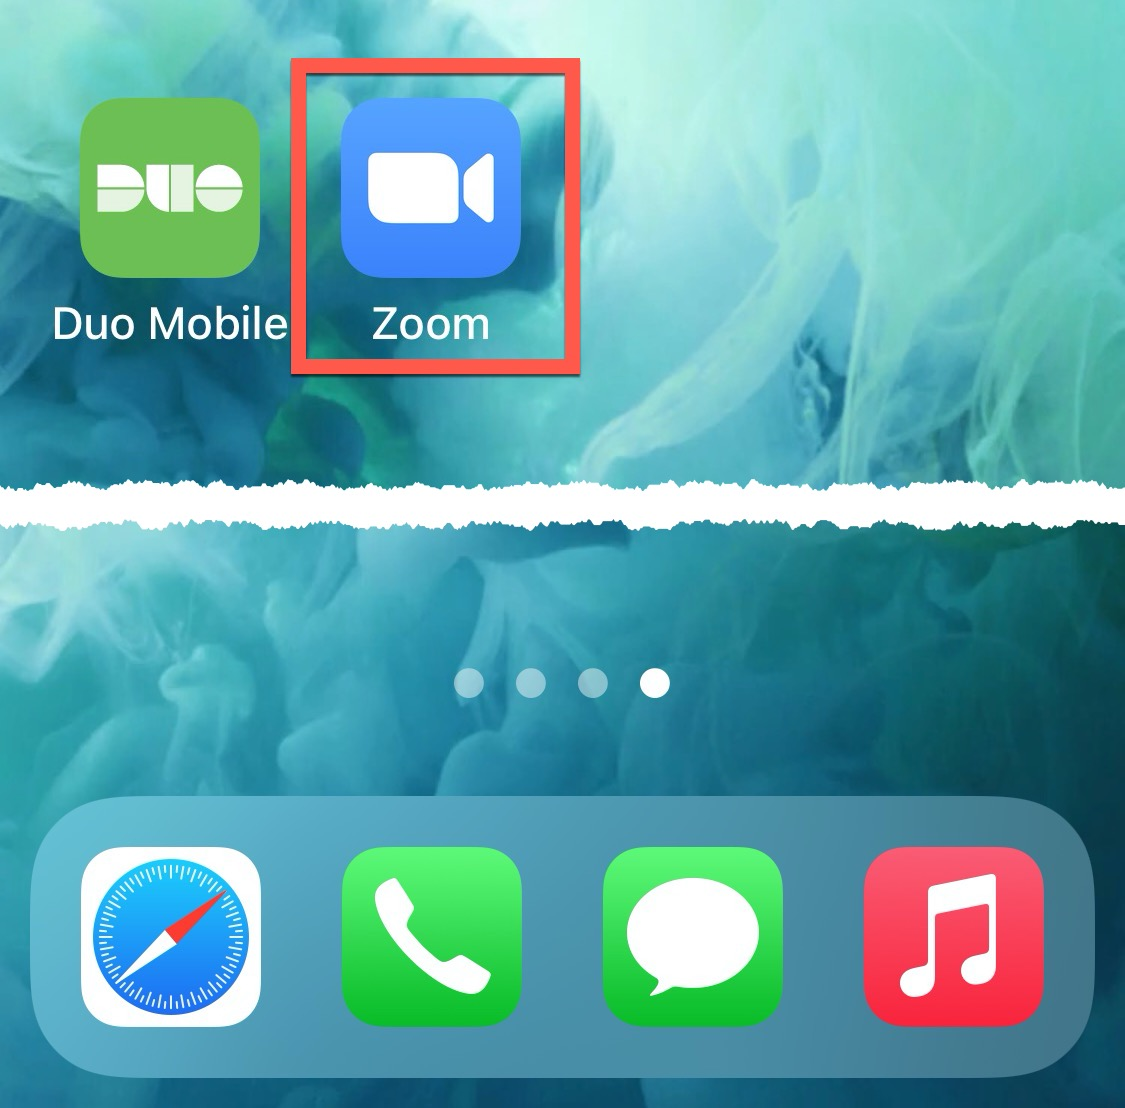 Zoom Smart Device Access Home Screen